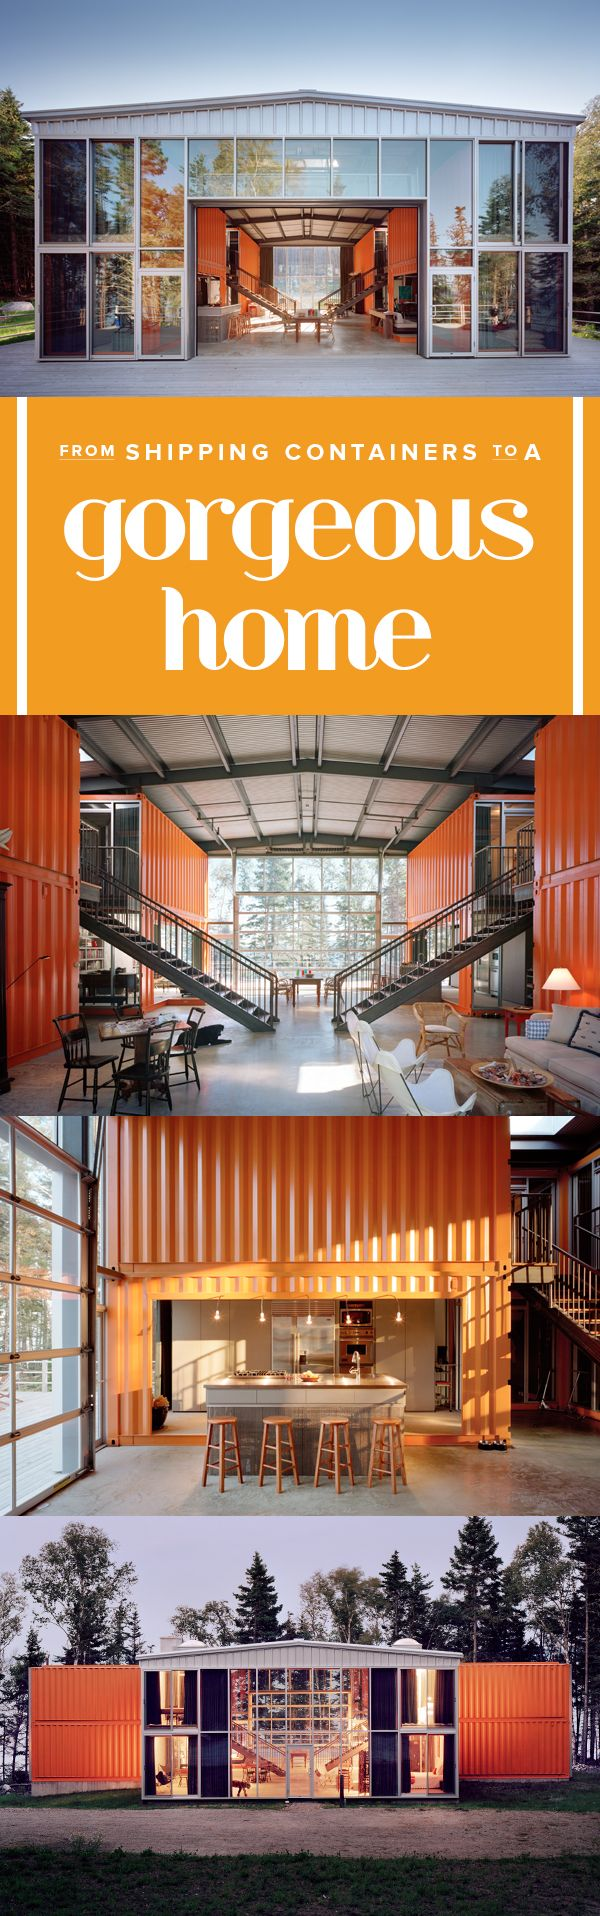 best 25+ shipping container interior ideas on pinterest